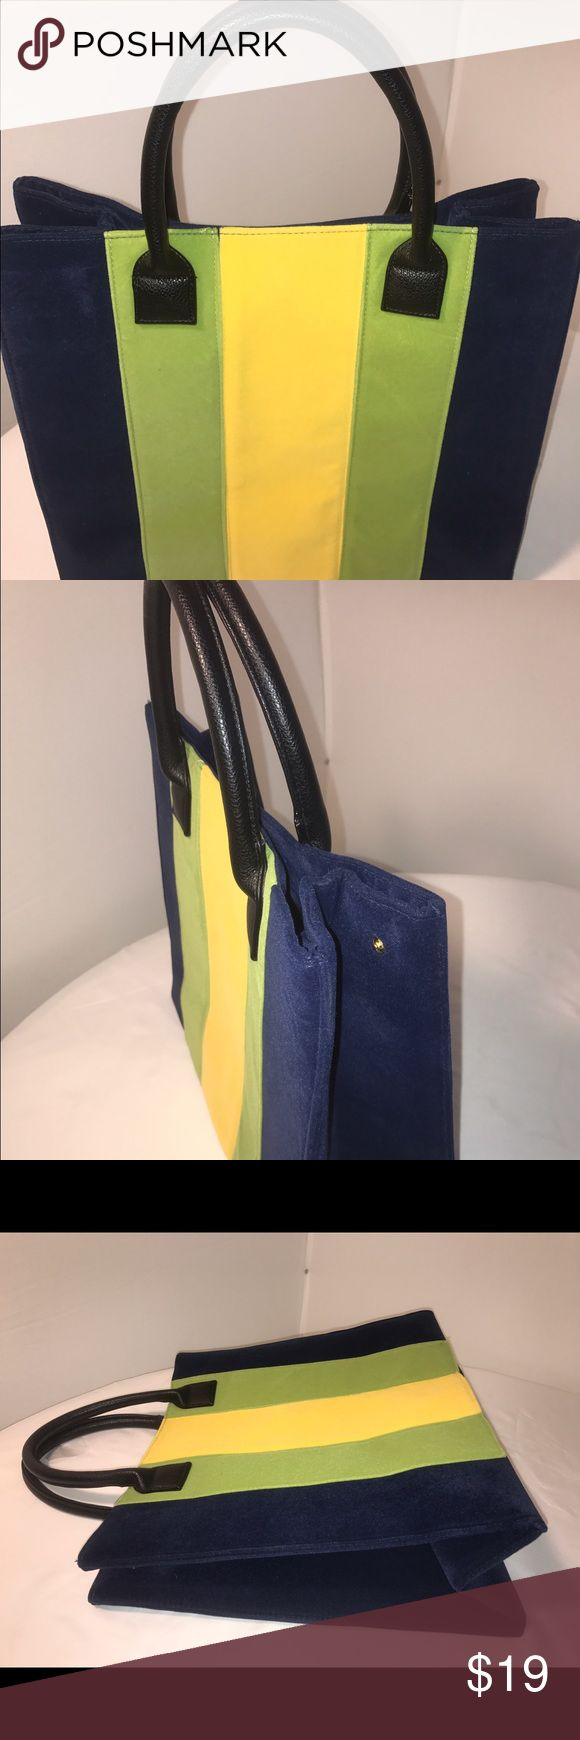 """Lulu Dharma Bag Mid size As seen on tv - Good Morning America  Medium size tote with velour feel to it.  Lulu Dharma Purses & hand bags Blue , green & yellow  It was ordered off the good morning America website as a Christmas present for me I do not need it I have too many bags already.  No tags- never used  Dimensions-  14""""x15""""x7"""" lulu dharma Bags Totes"""